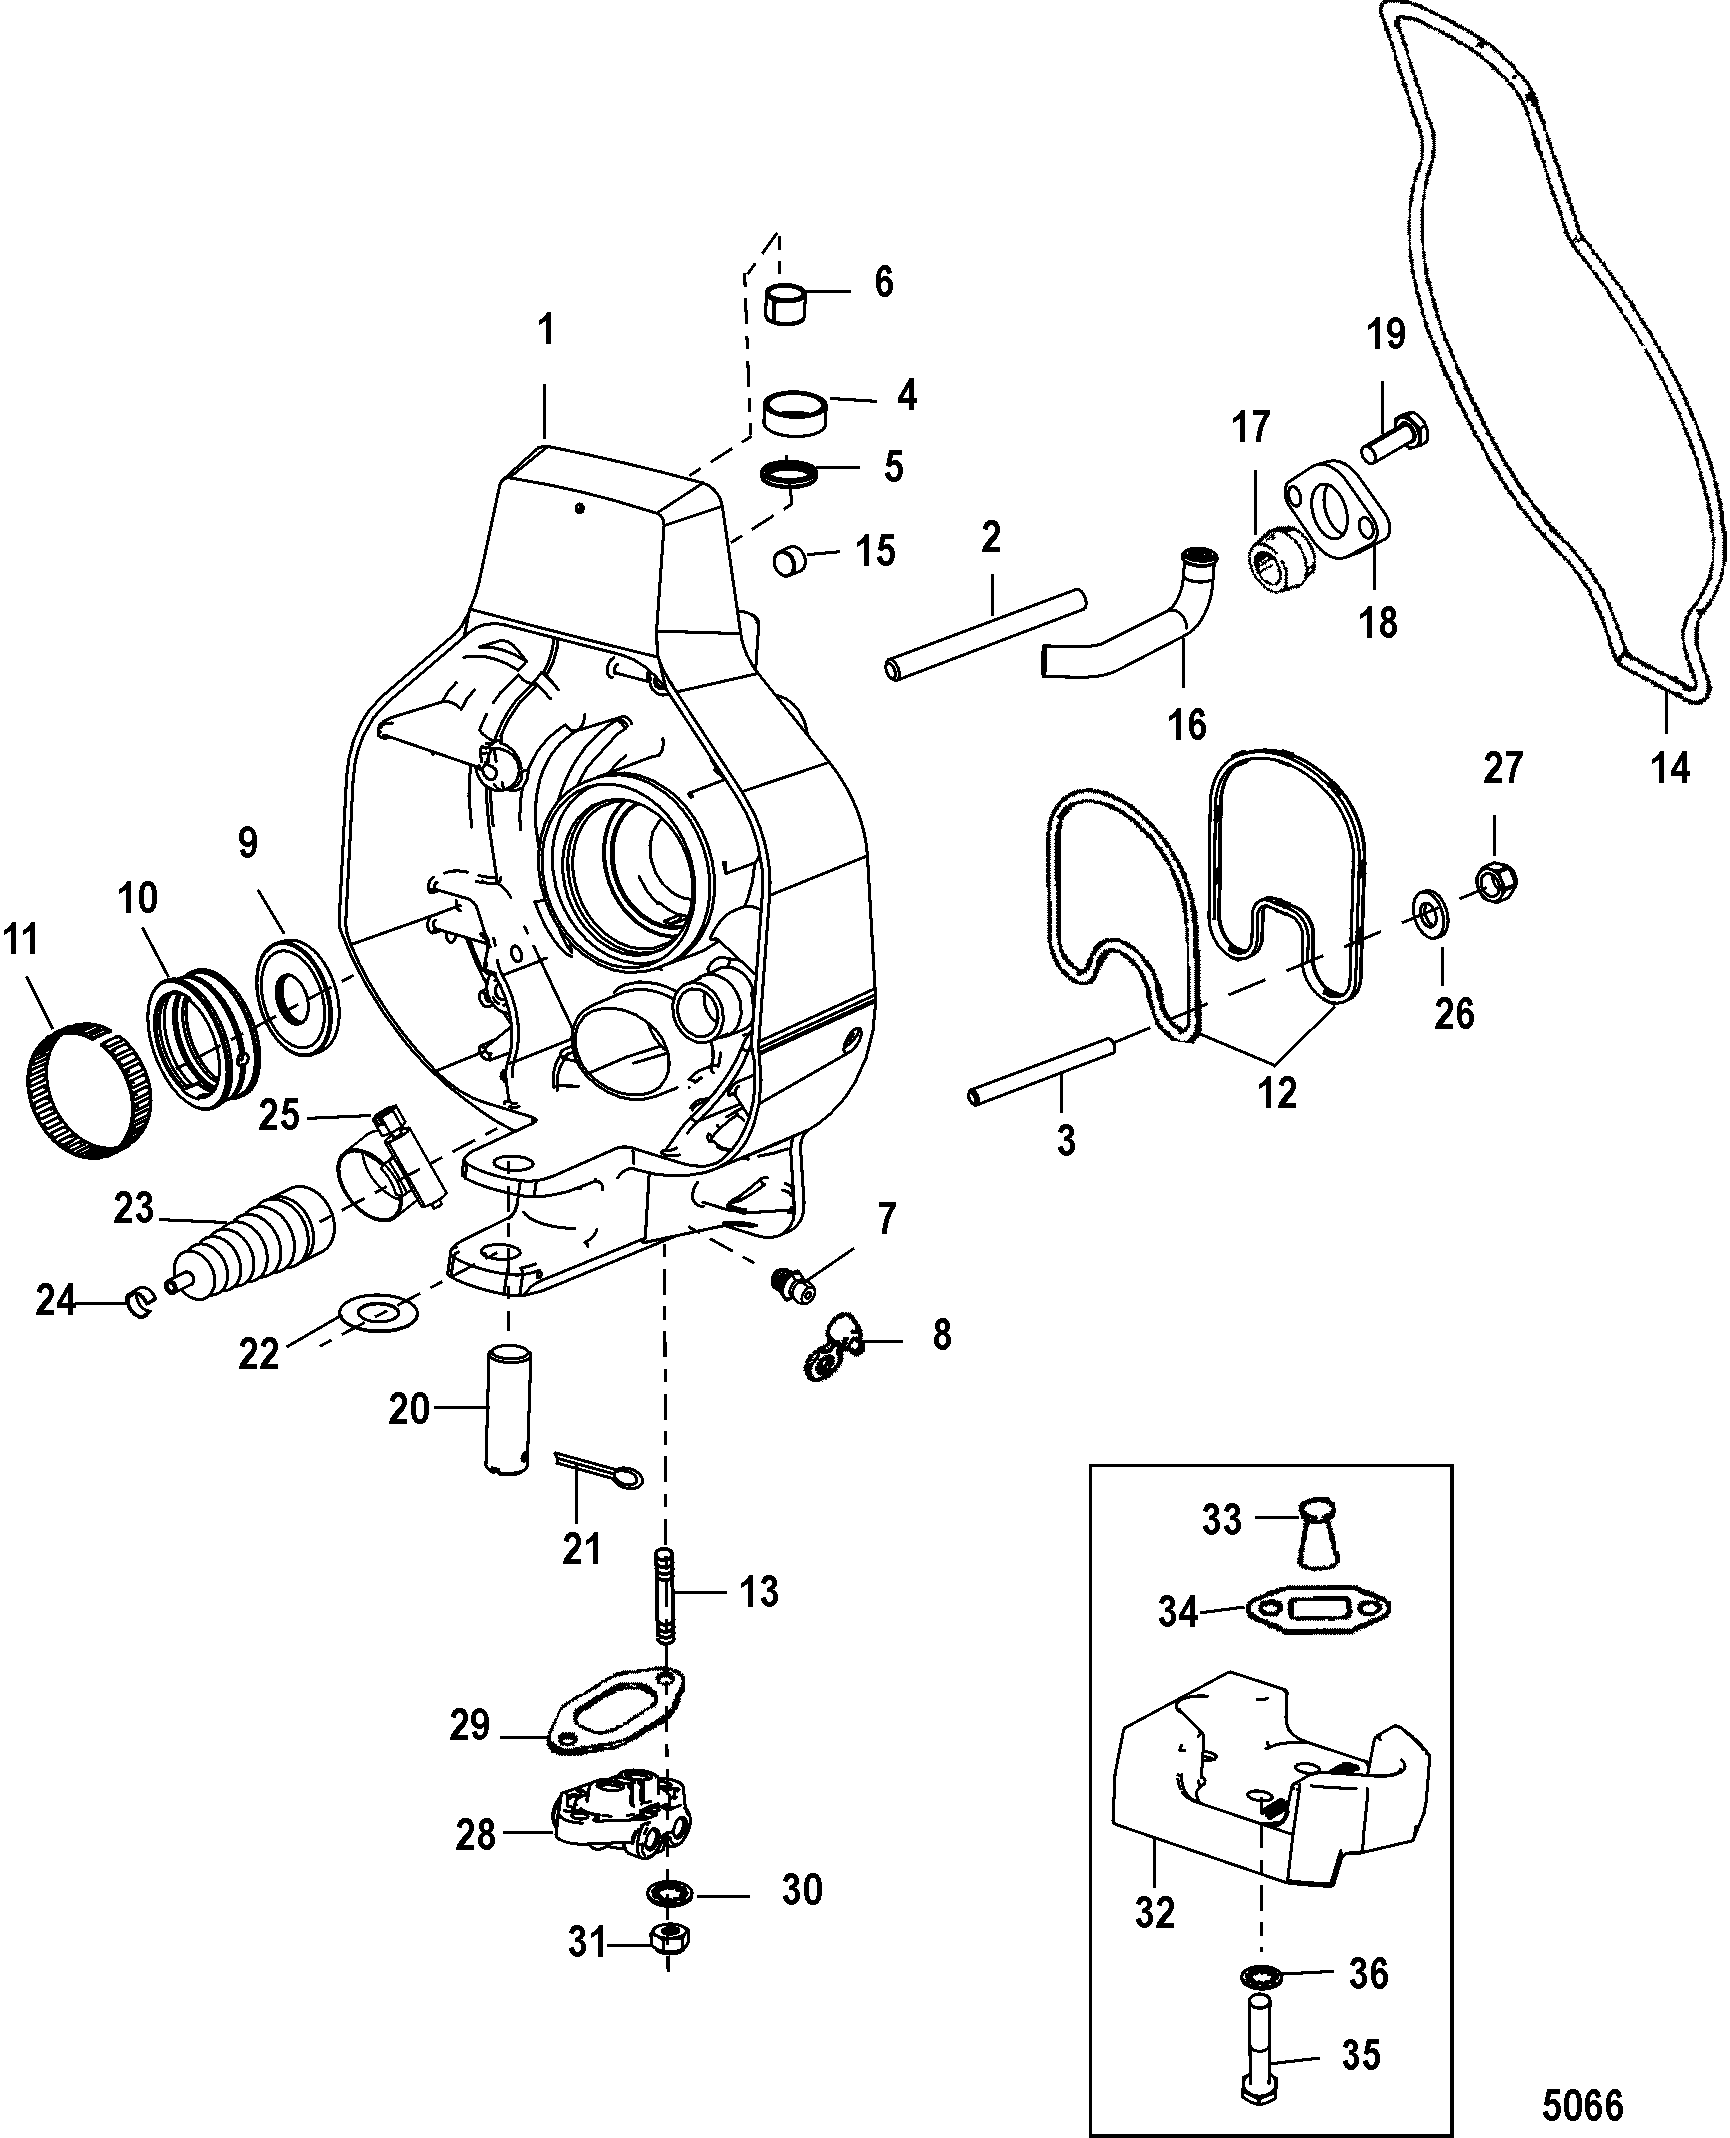 Mercruiser Gimbal Housing Diagram. Parts. Wiring Diagram